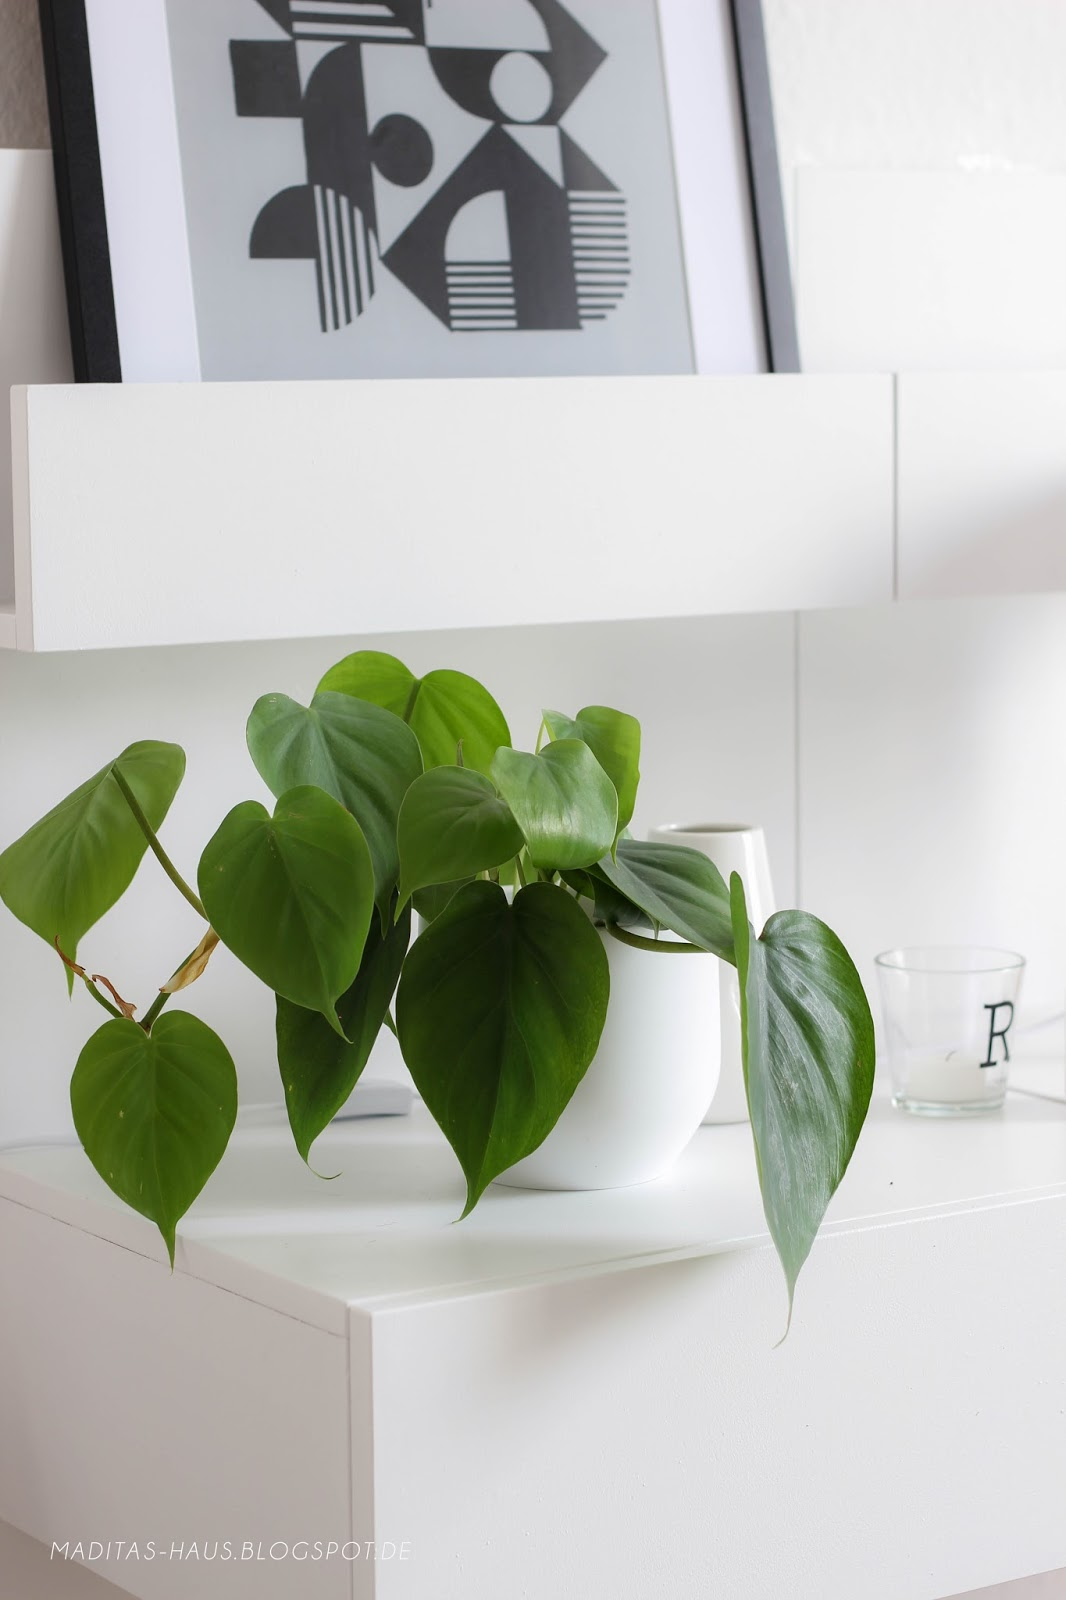 I plants maditas haus lifestyle und interior blog for Trend pflanzen